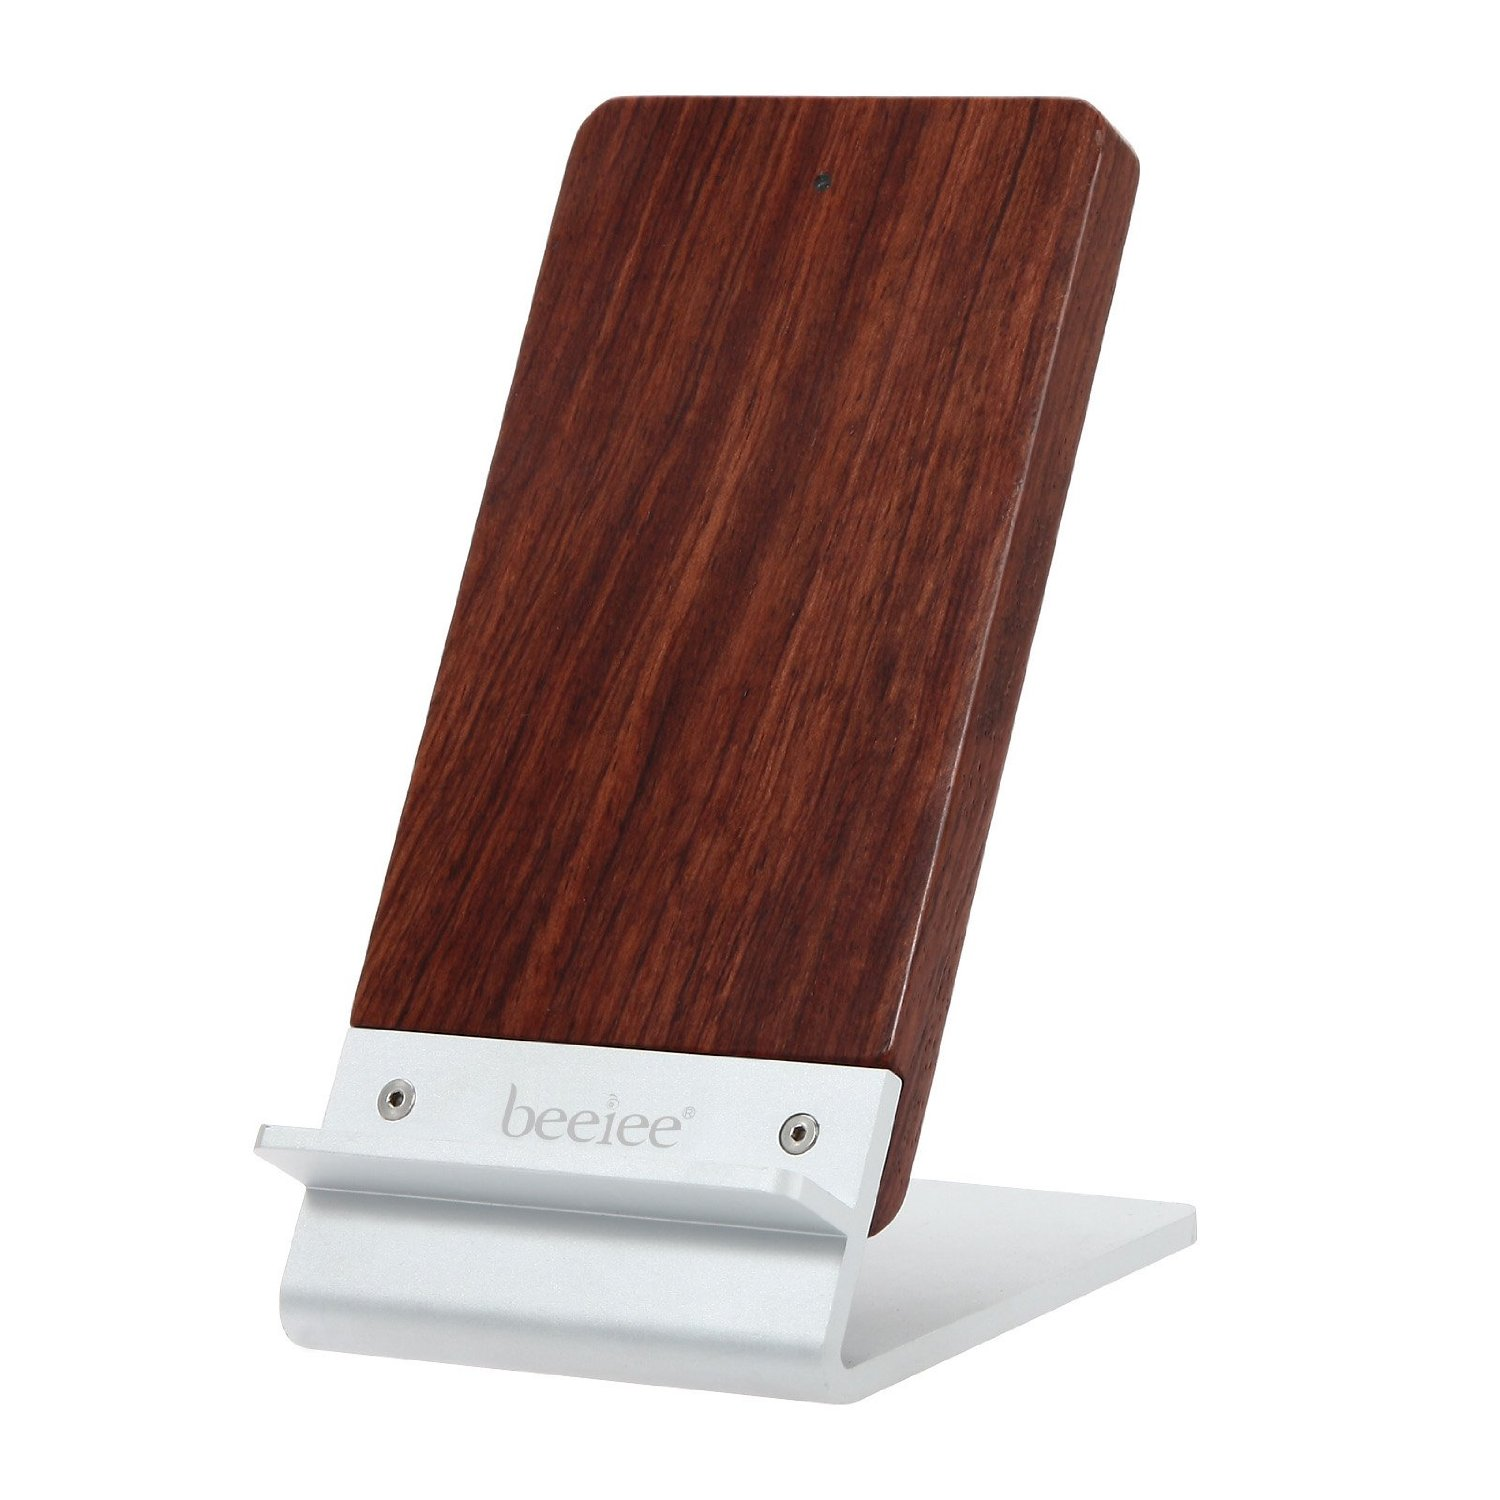 Wireless Charging Stand, Beeiee 3-Coils Rosewood Aluminum Alloy Qi Phone Wireless Charger Stand Pad for Samsung Galaxy S6 / S6 Edge,Galaxy S7 / S7 Edge,Galaxy S8,Note 5